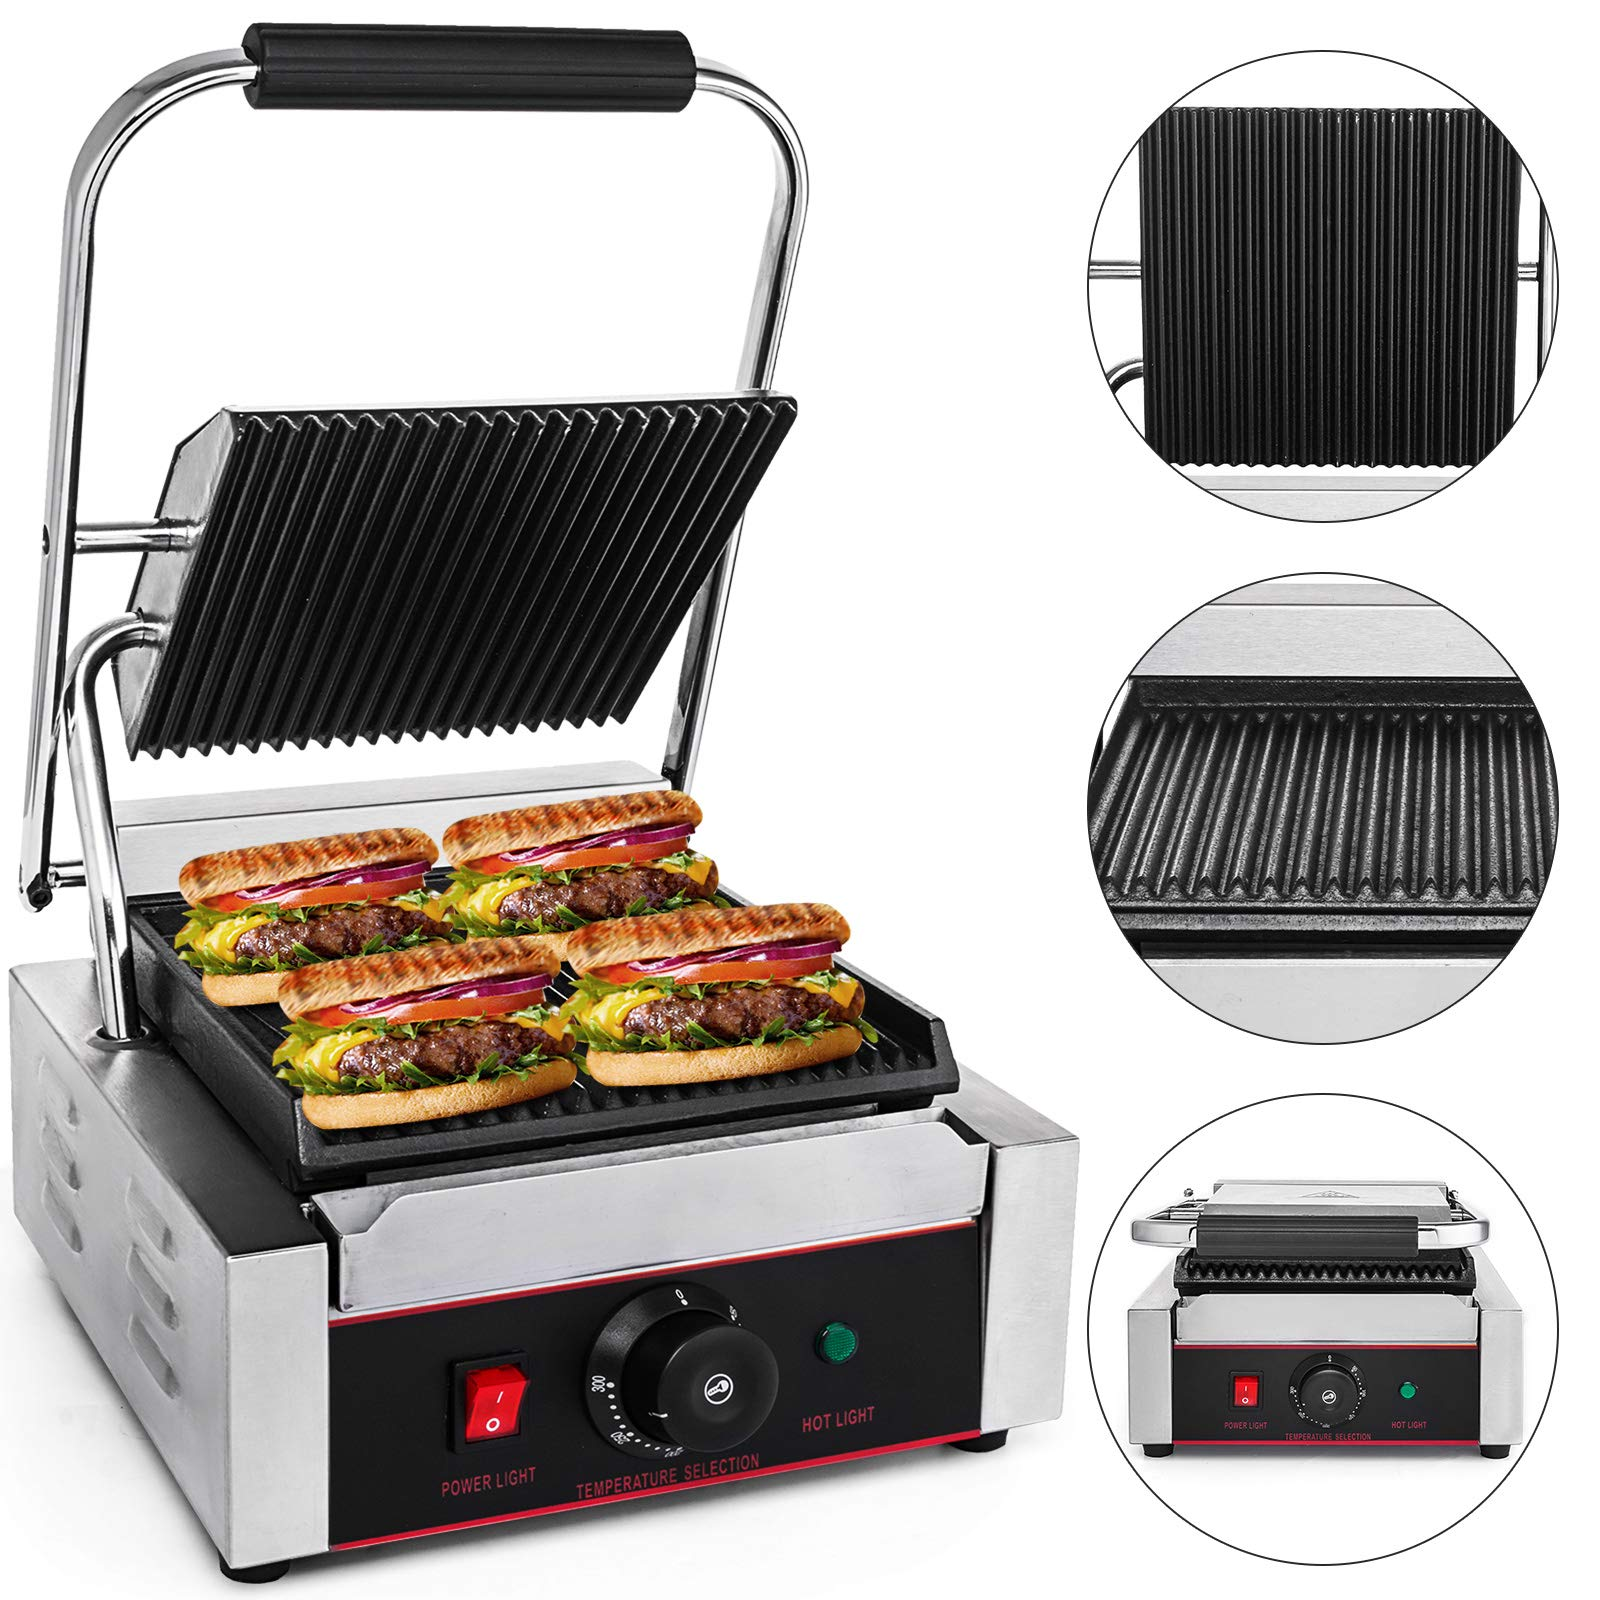 Happybuy Sandwich Press Grill 110V Panini Maker and Grill 1800W Commercial Panini Grill Durable Stainless Steel Construction with Adjustable Temperature Control Cooking Non Stick Surface Grooved Plates